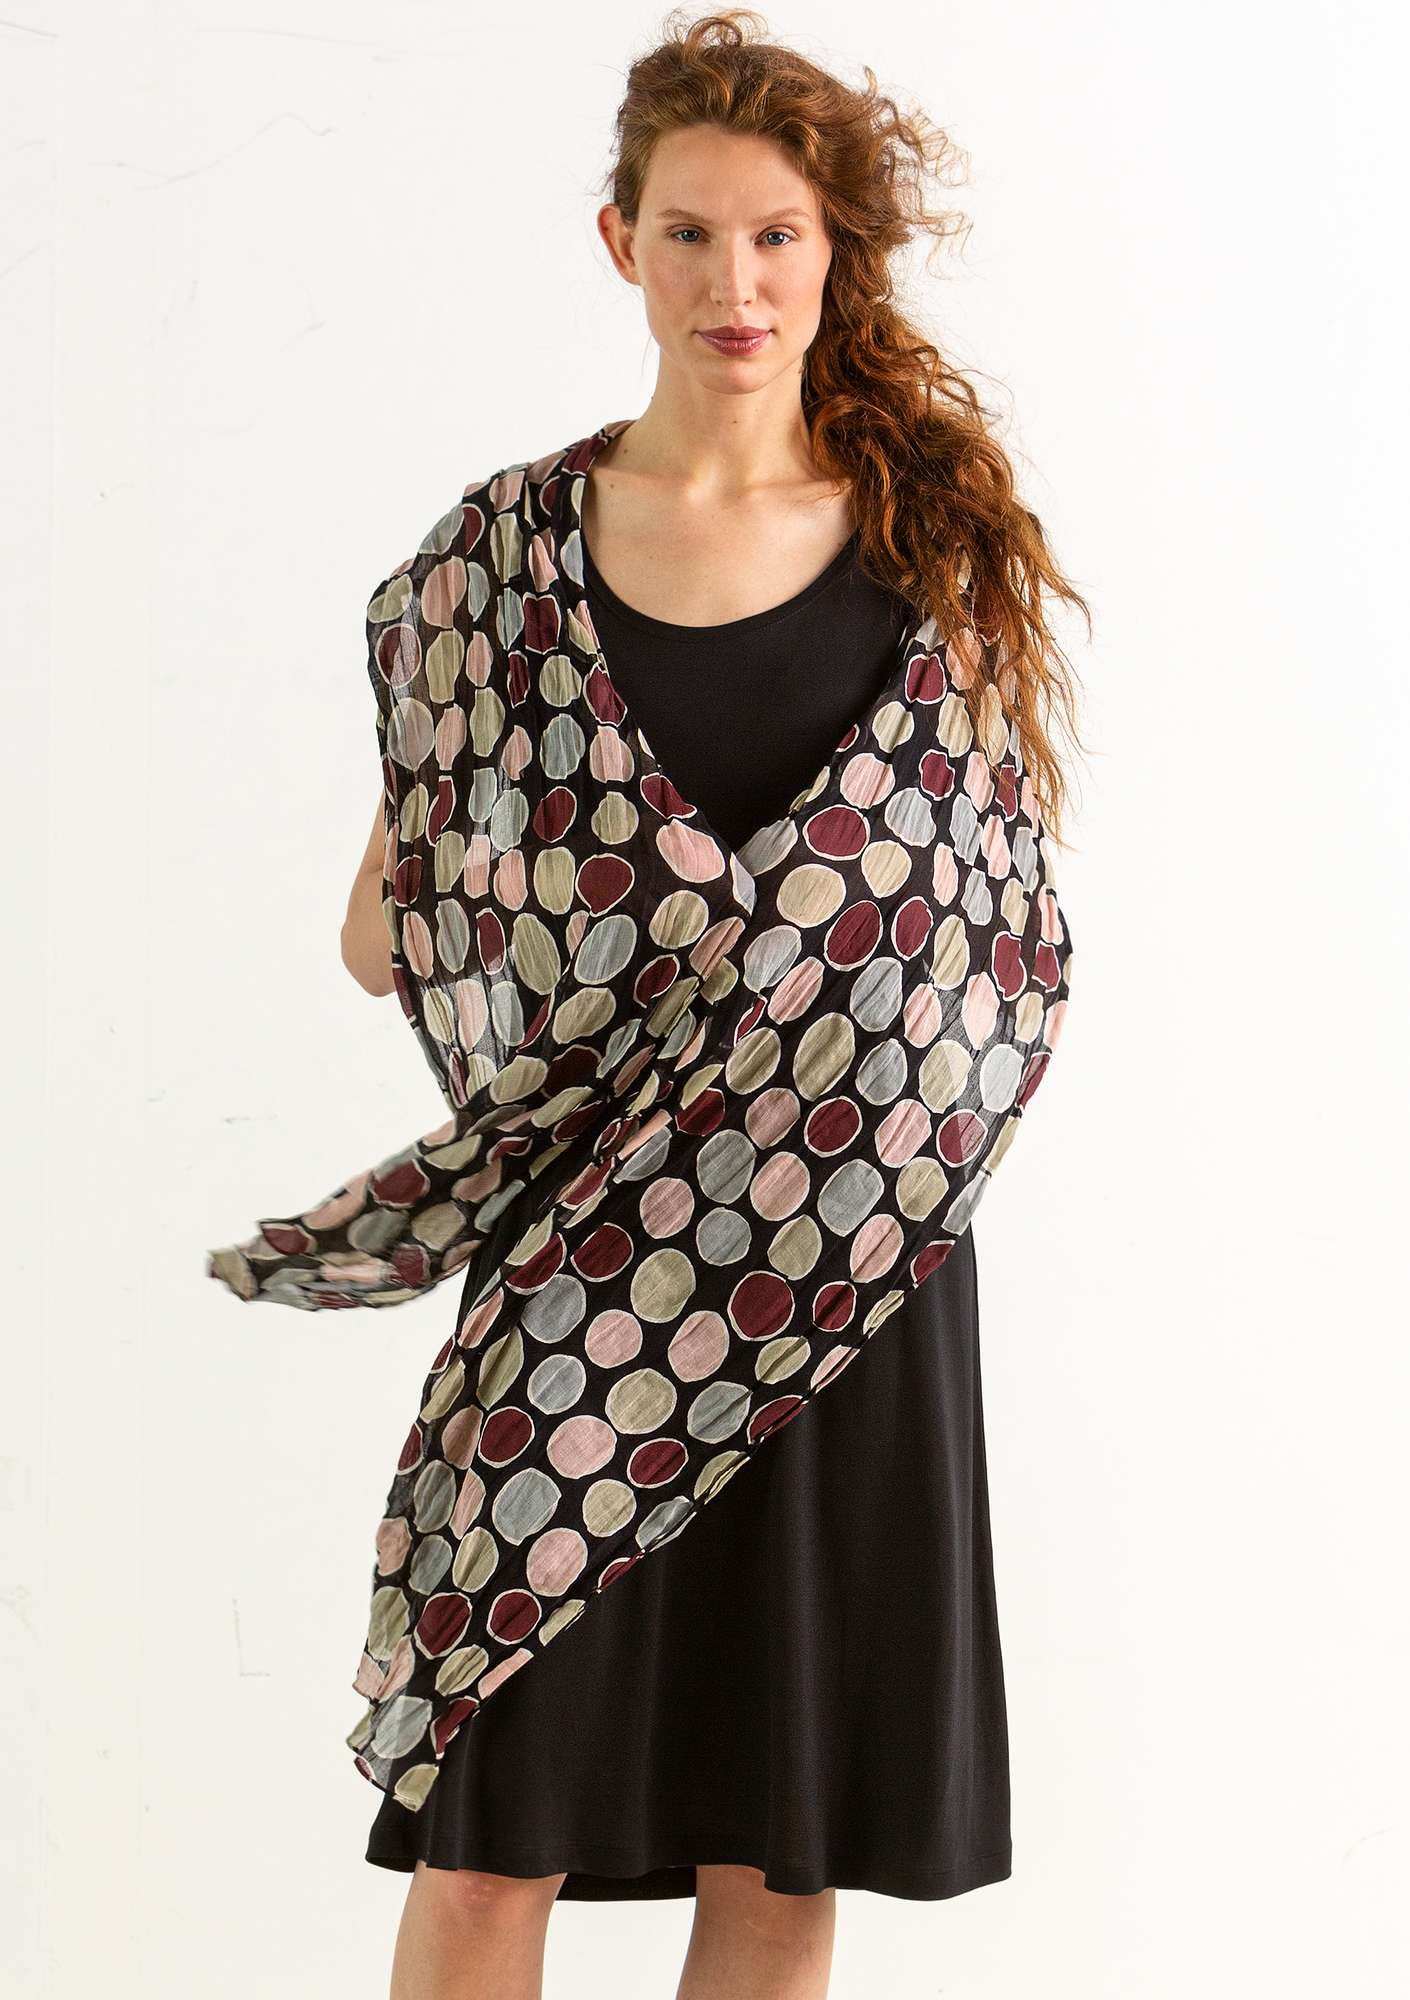 Cloud shawl black